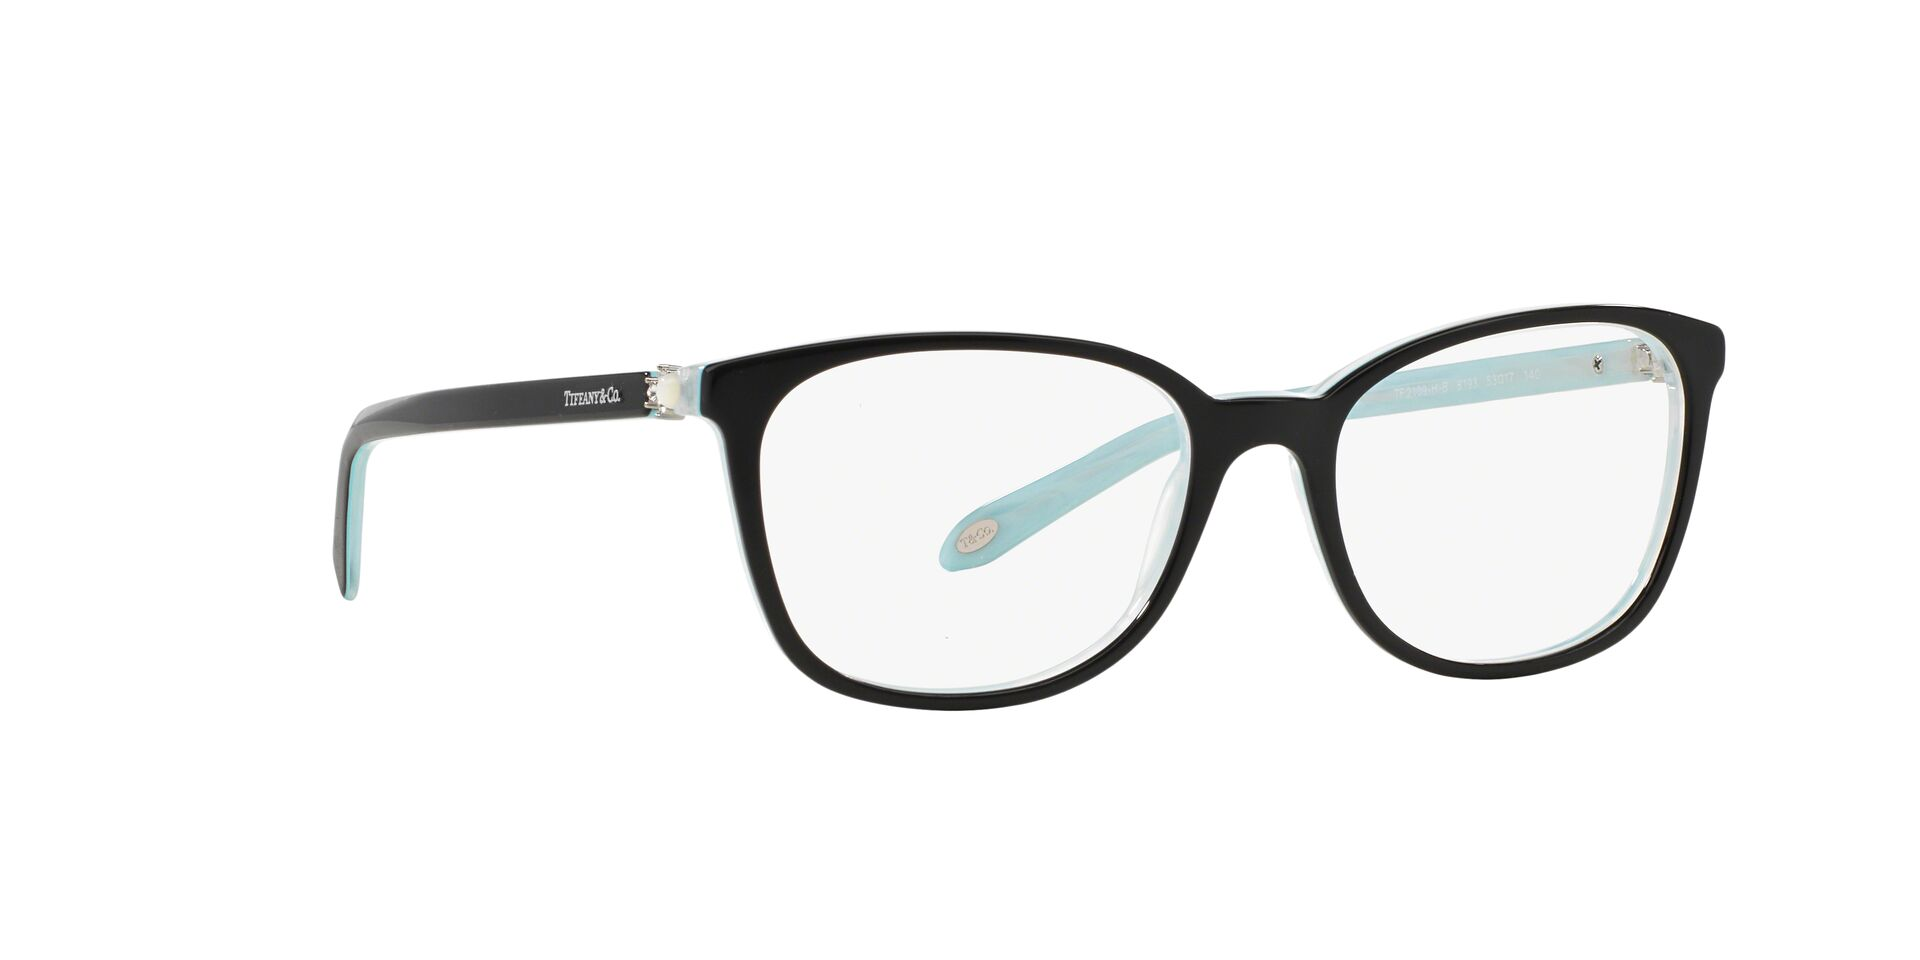 Tiffany - TF 2109HB Black Oval Women Eyeglasses - 53mm-Eyeglasses-Designer Eyes